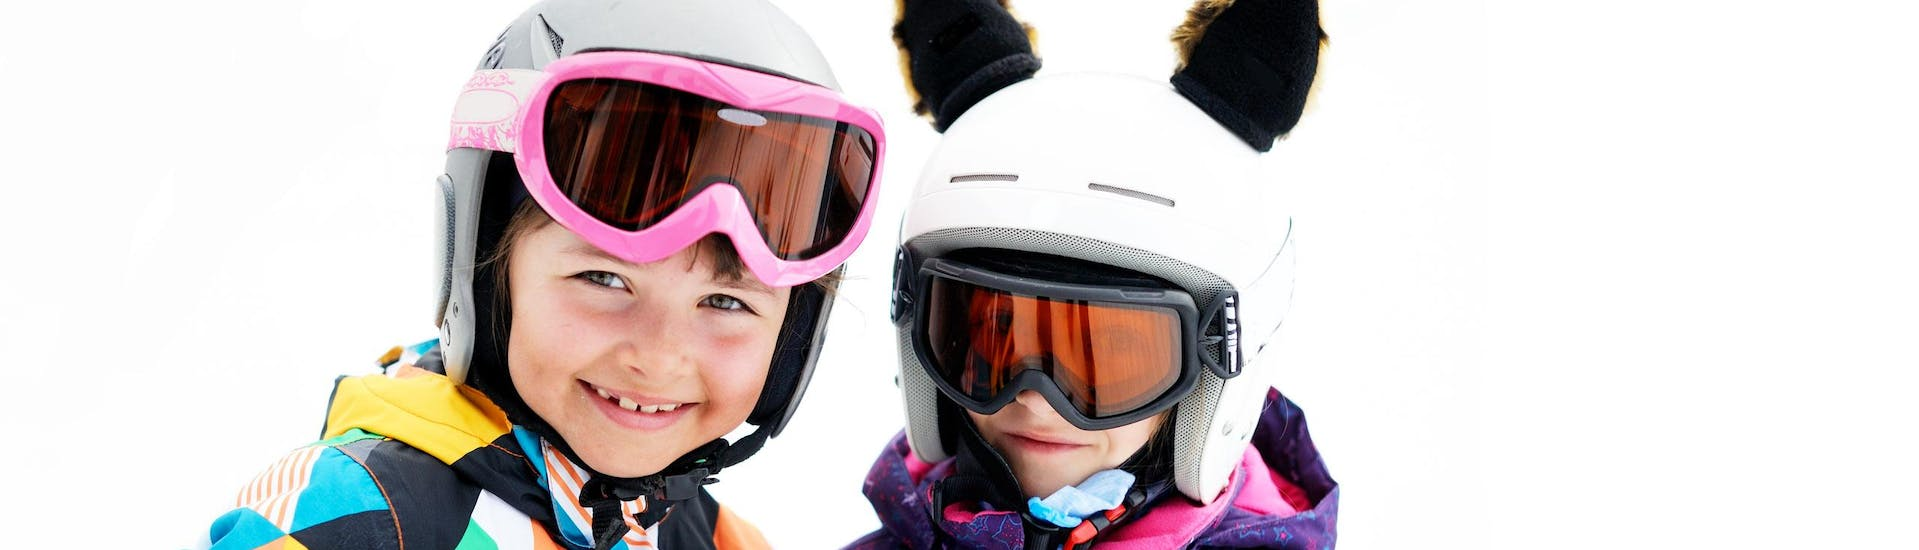 Two young children smiling at the camera during one of the Kids Ski Lessons (3.5-10 y.) for Beginners organised by TOP SECRET Ski- & Snowboard School Davos.